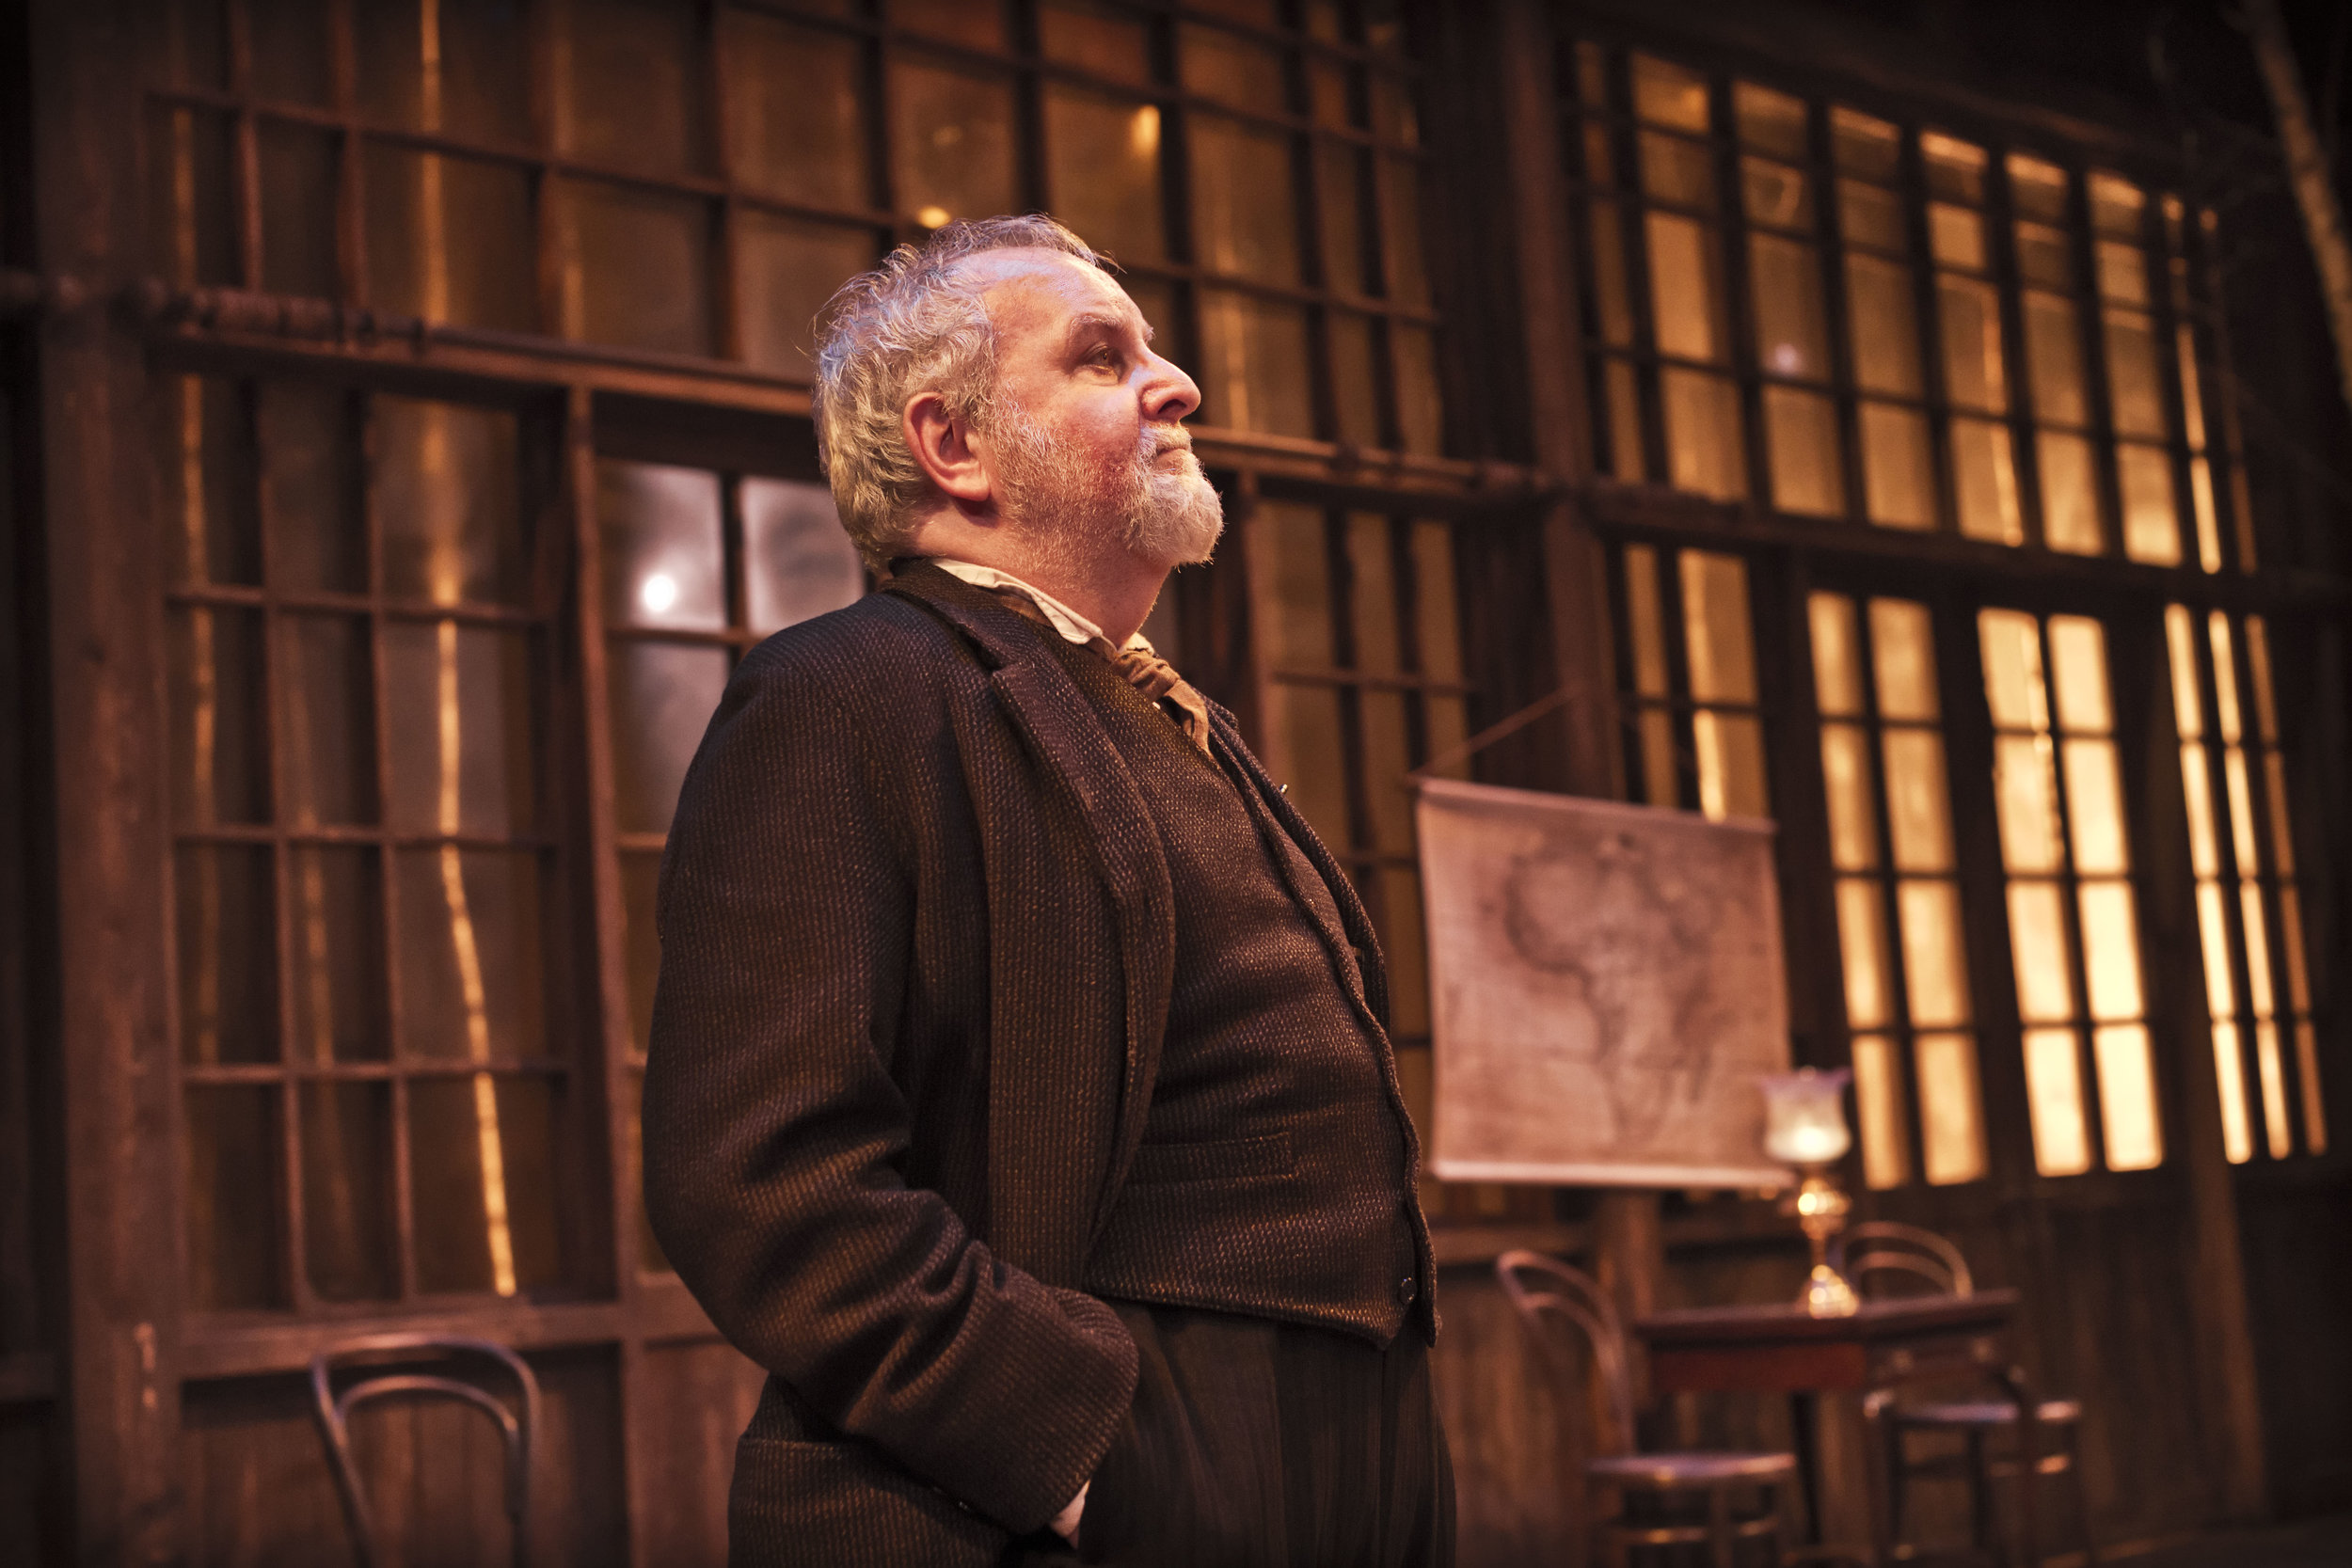 5. CFTunclevan2012JP_01462 Anthony O'Donnell (Telegin) in Uncle Vanya Photo by Johan Persson).jpg